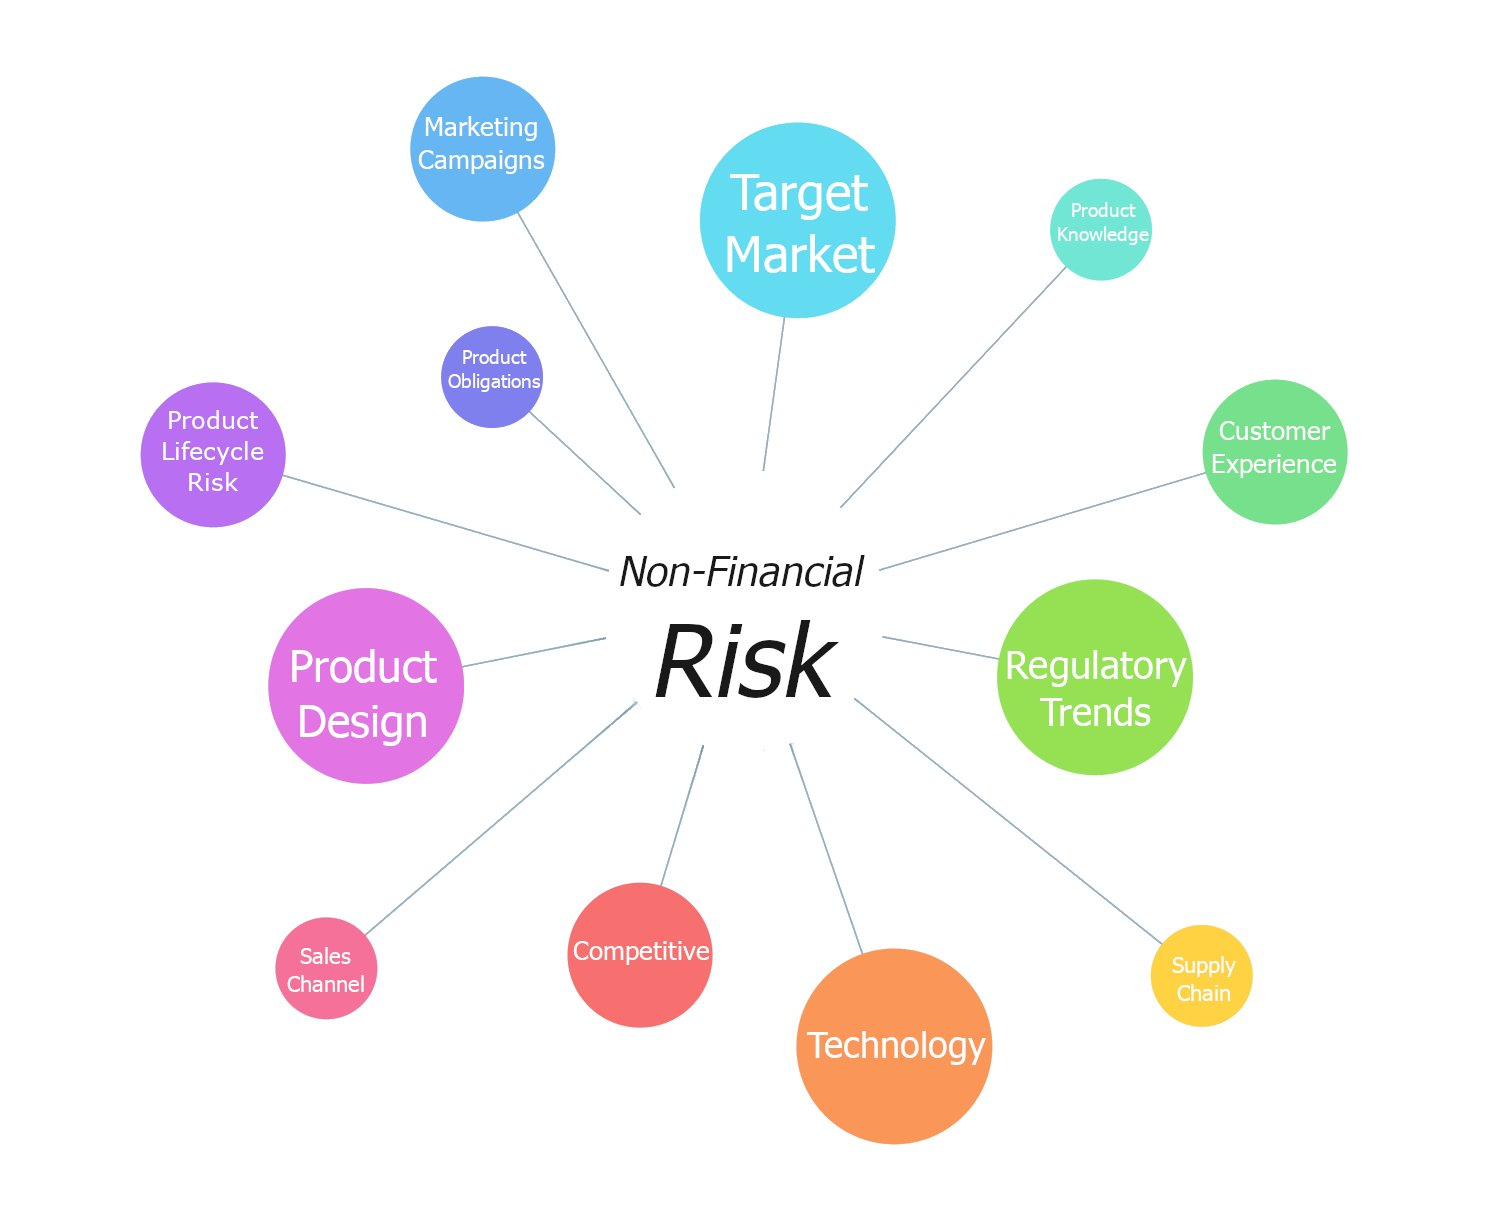 How to oversee non-financial product risk